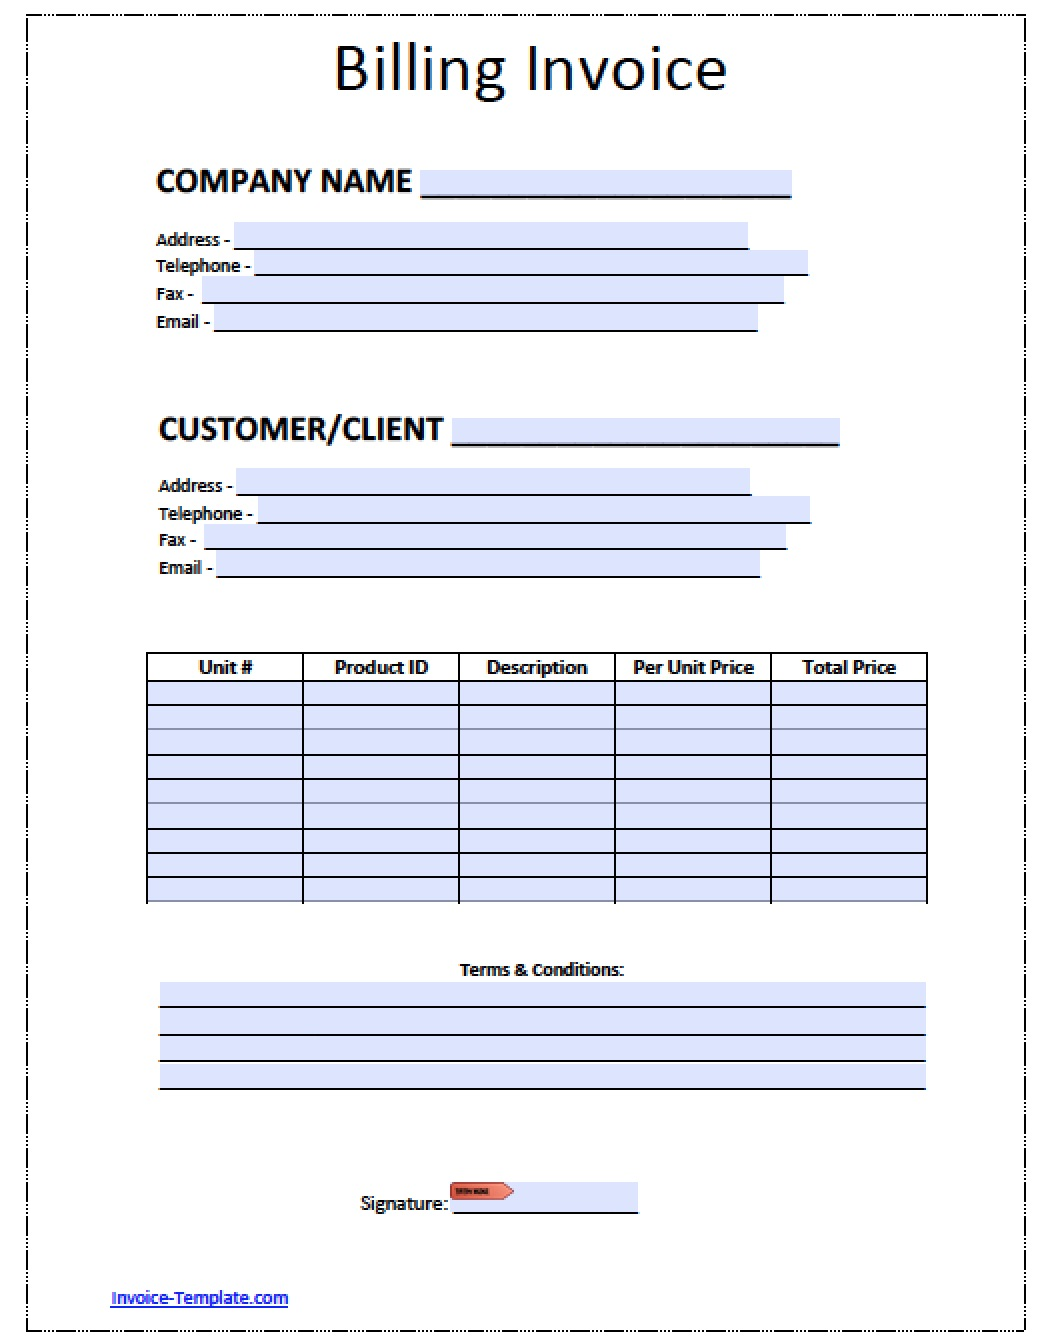 Marvelous Billing Invoice Template Word Pdf Ideas Billing Receipt Template